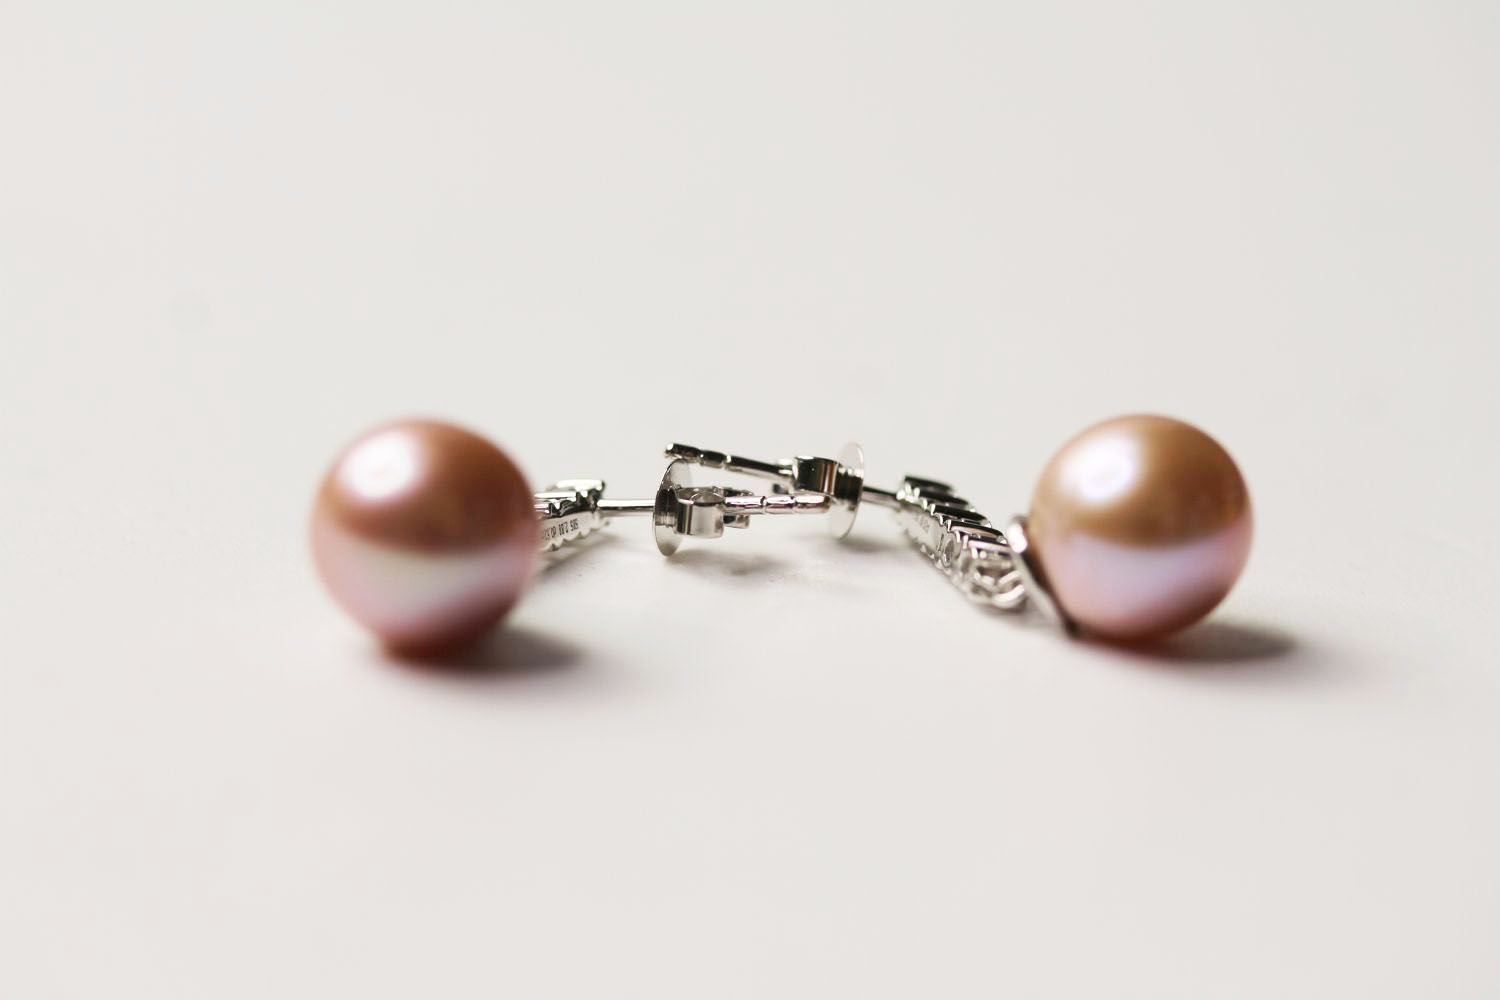 Pair Of Pink South Sea Pearl & Diamond Earrings, set with 2 round cultured pearls, 10 round - Image 2 of 3